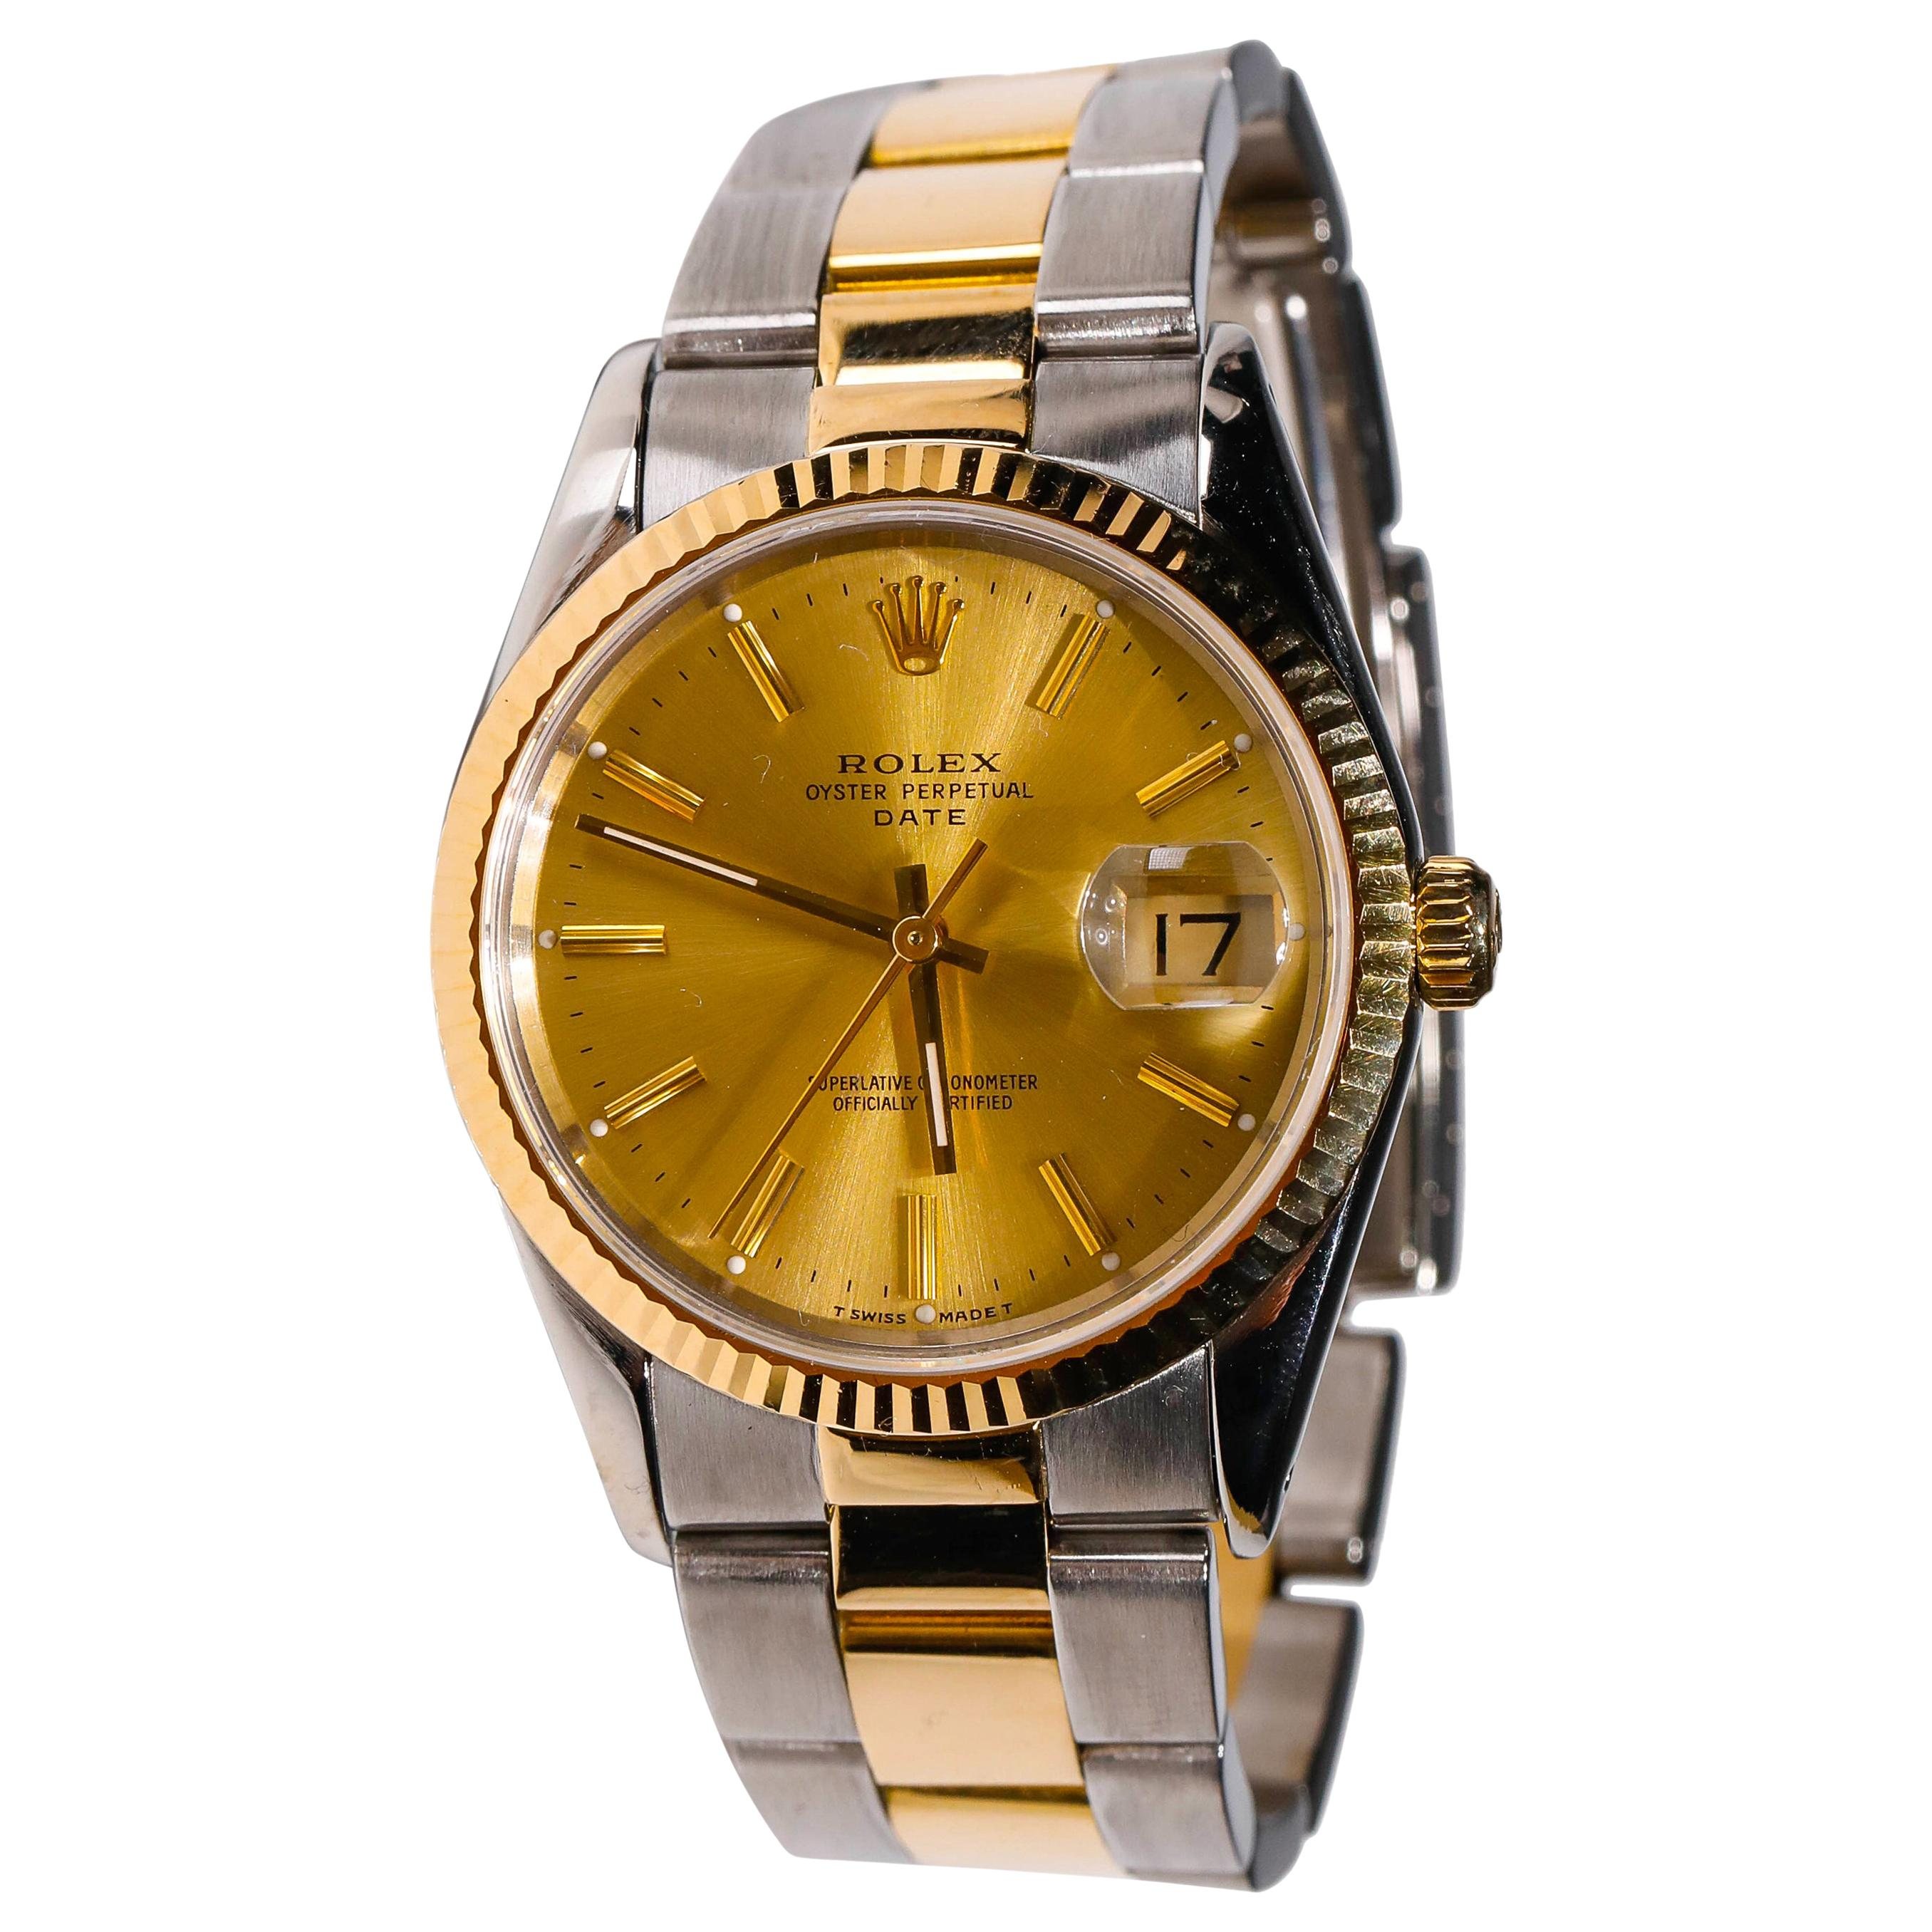 Rolex Men's Twotone Oyster Perpetual Stainless Steel Automatic Golden Dial Watch